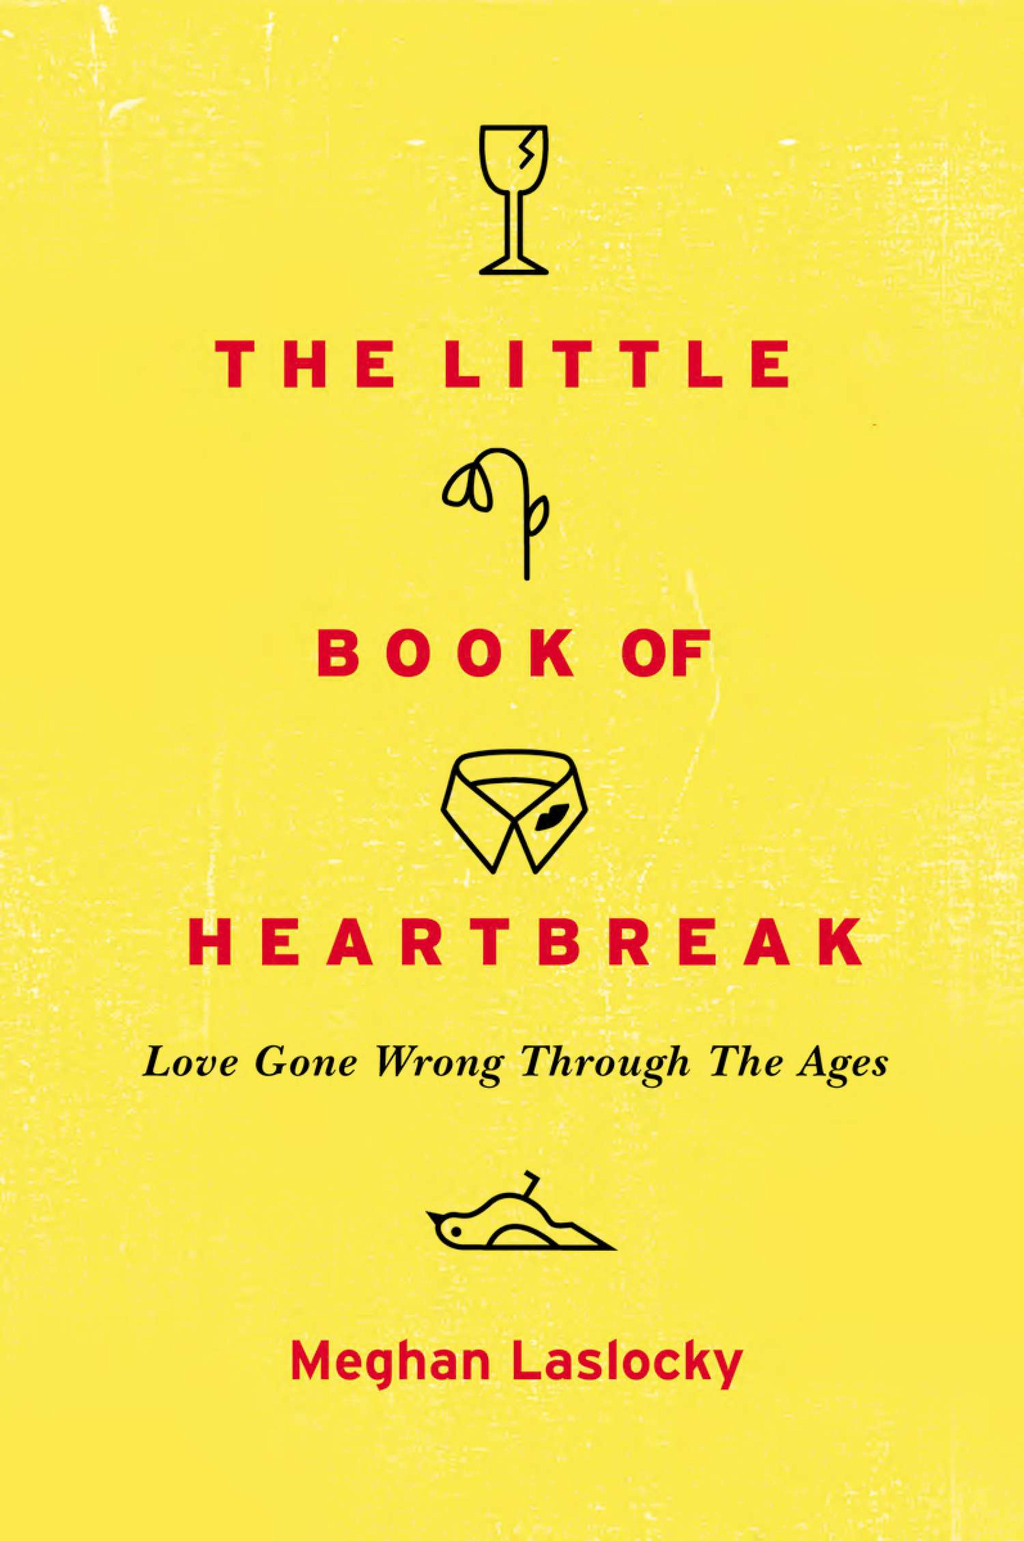 The Little Book of Heartbreak By: Meghan Laslocky